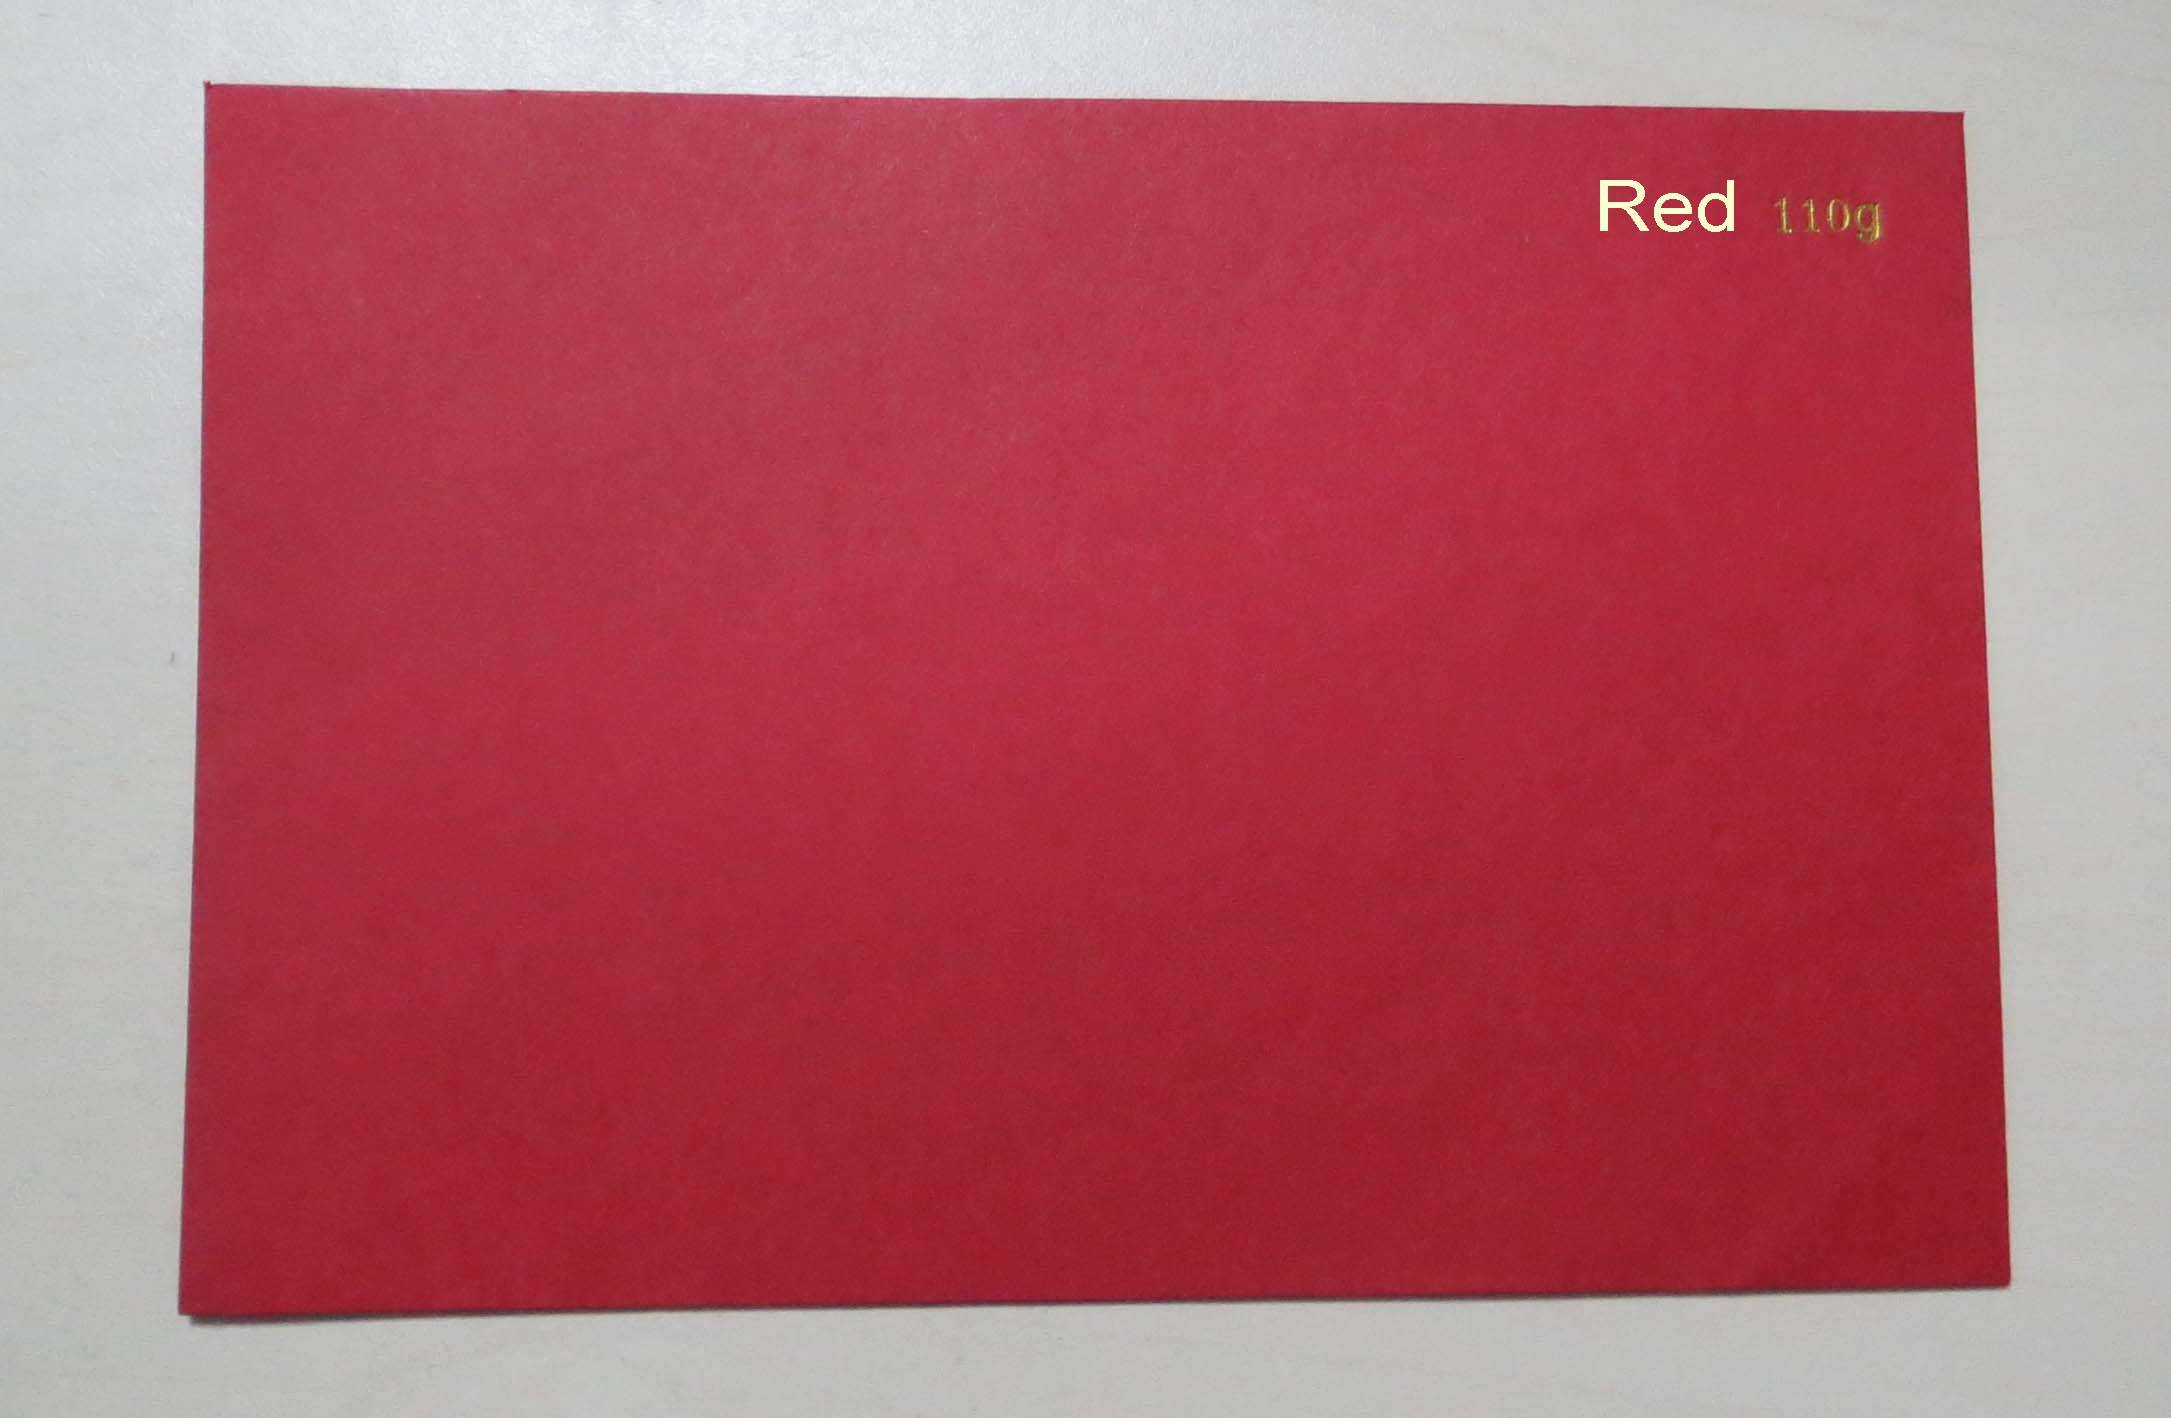 110g-280g red cardboard, red paperboard, colored paper